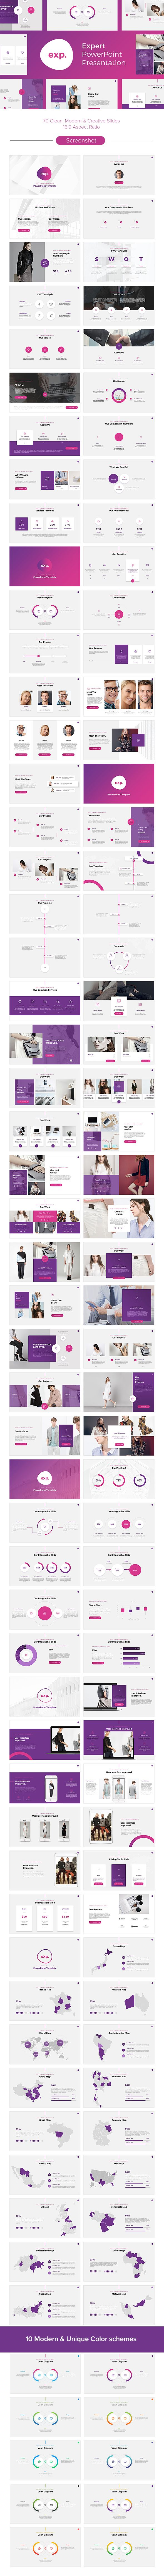 Expert PowerPoint Presentation - Creative #PowerPoint #Templates Download here: https://graphicriver.net/item/expert-powerpoint-presentation/20127130?ref=alena994